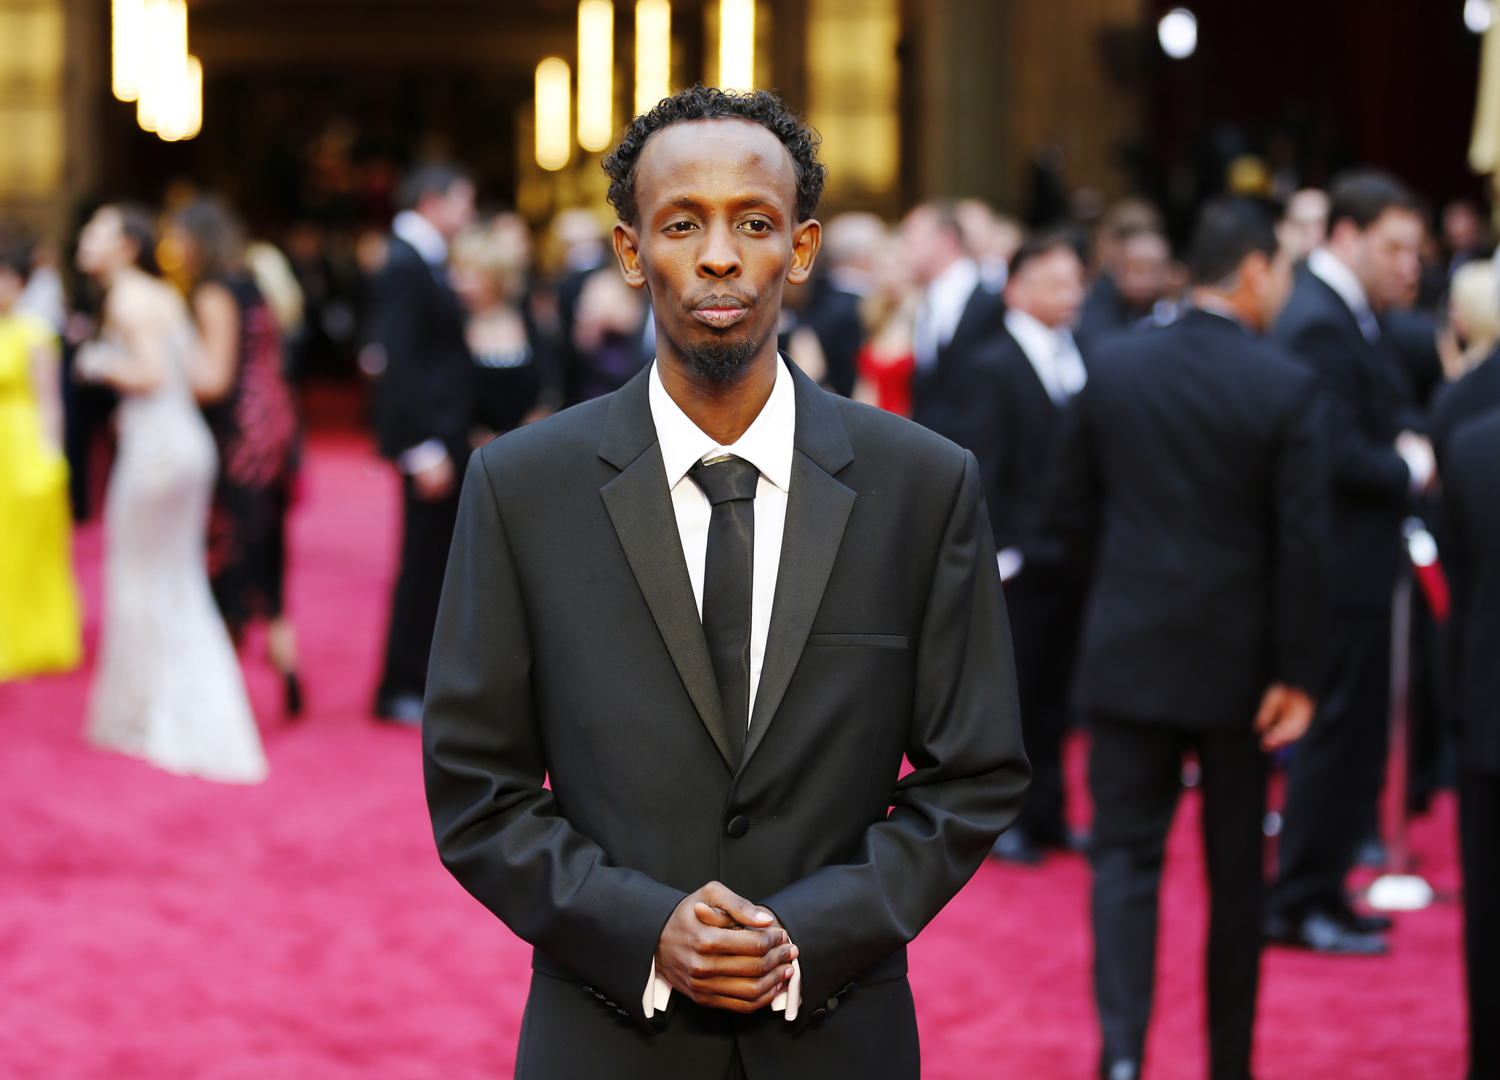 Barkhad Abdi, best supporting actor nominee for his role in Captain Phillips, arrives at the 86th Academy Awards in Hollywood, California March 2, 2014